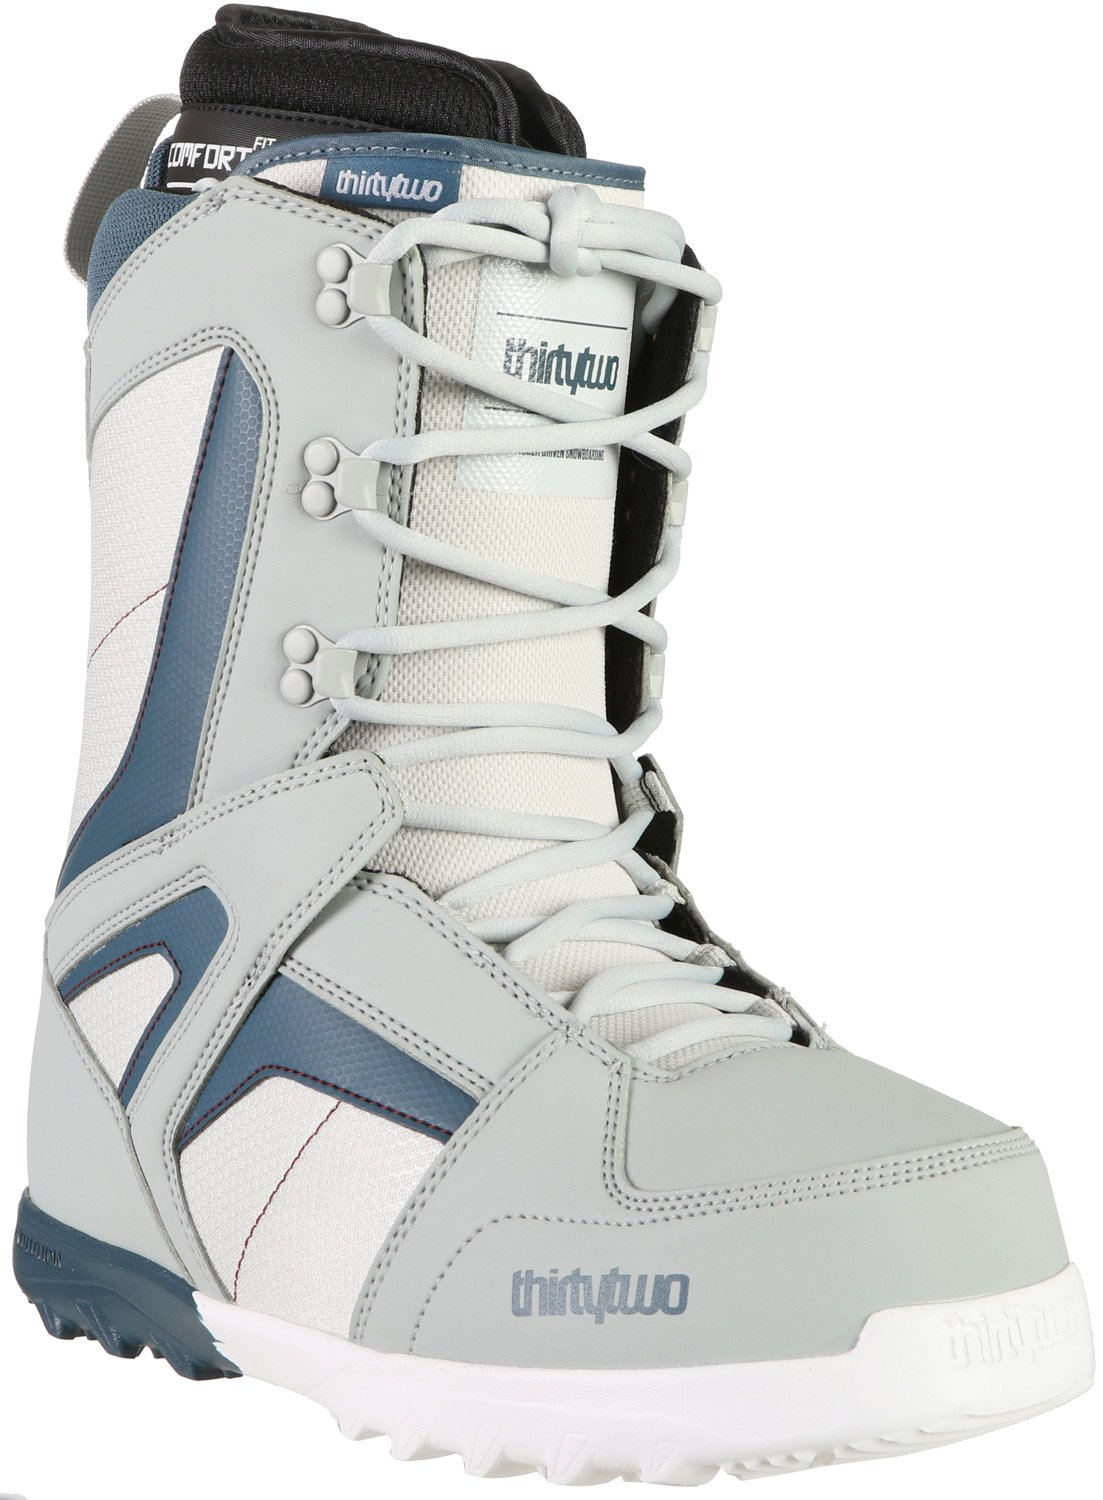 thirtytwo Prion Snowboard Boot Men's